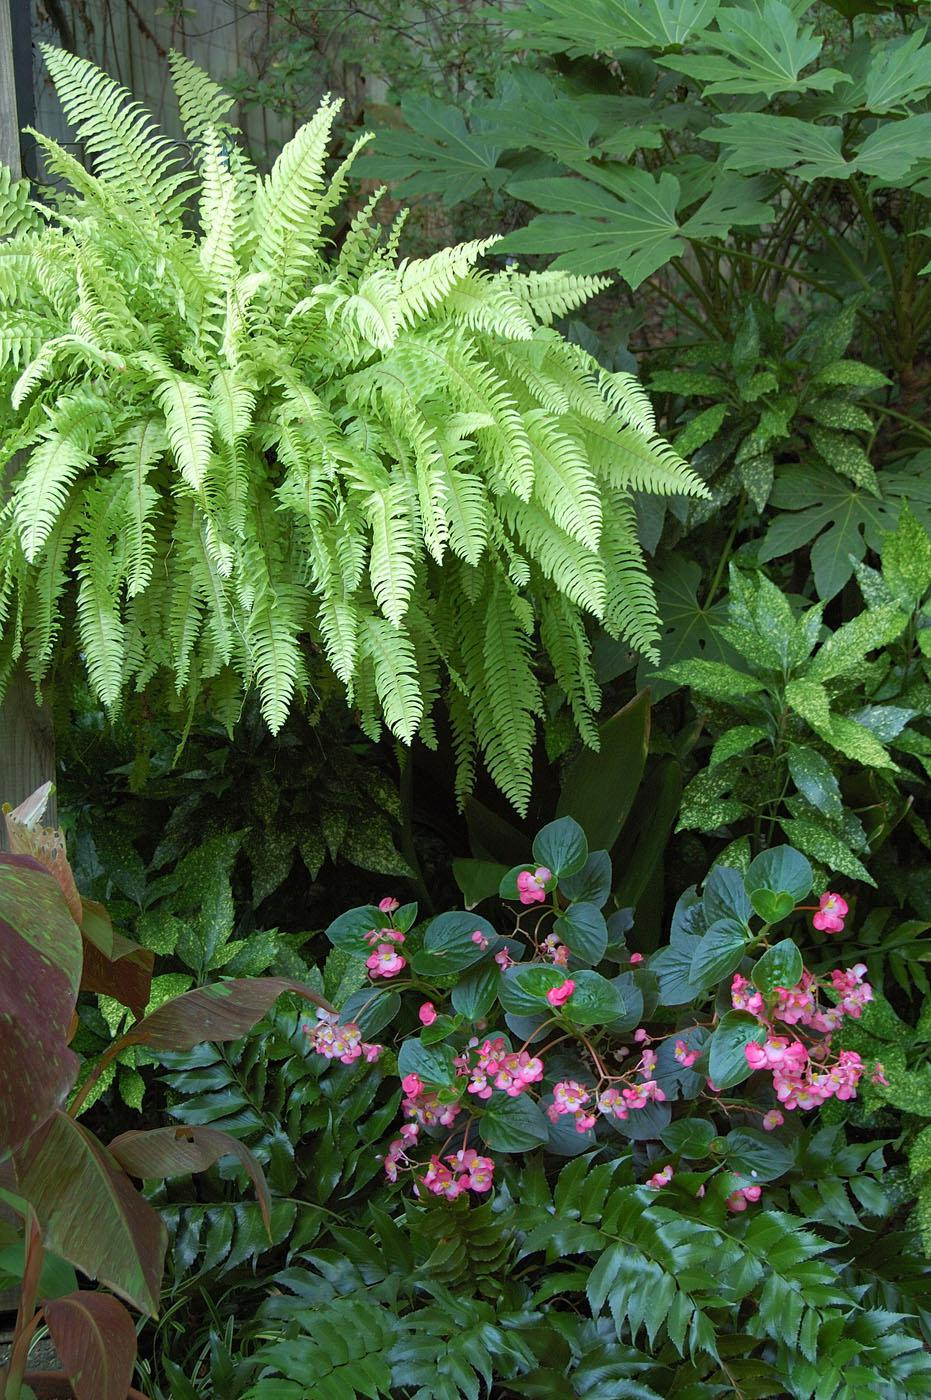 A Blonde fern glows like a lantern in this shady environment. This stunning display combines large, palmate-leafed fatsia; aucuba with spots that echo the color of the fern; Siam Ruby banana with lime green variegation; holly fern; and hot pink begonias. (Photo by Norman Winter)